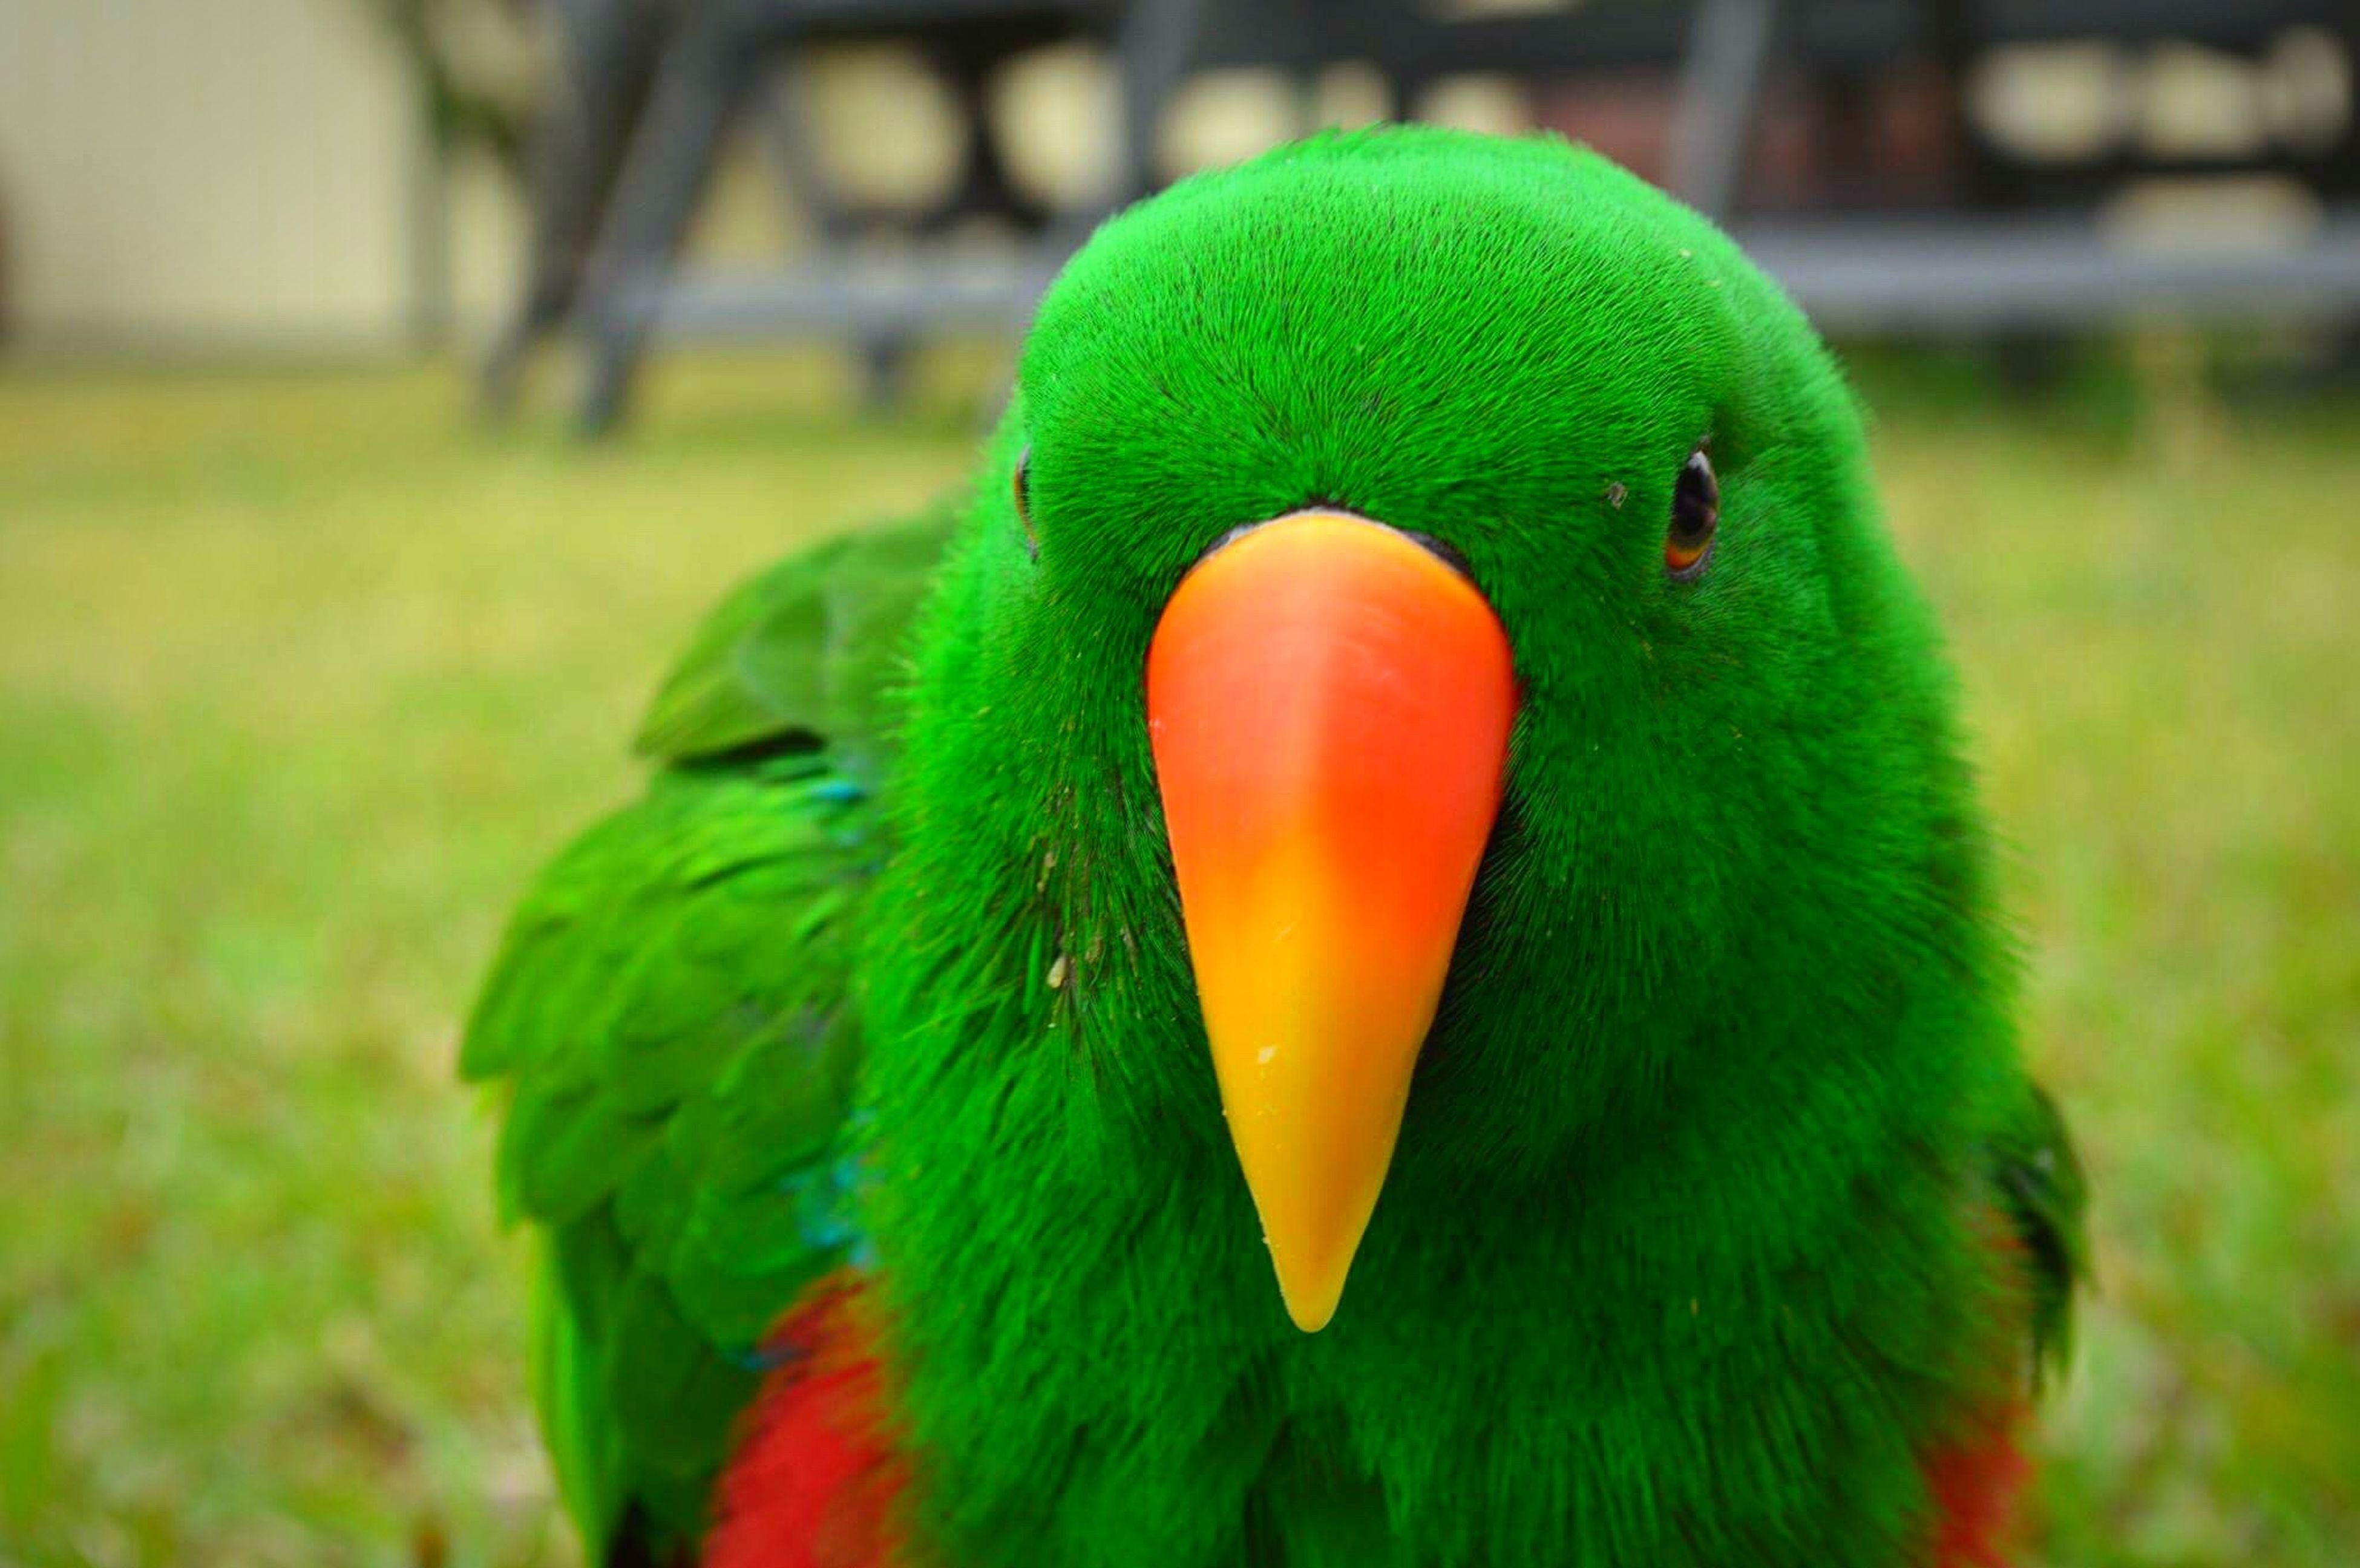 bird, animal themes, focus on foreground, beak, close-up, animals in the wild, green color, animal wildlife, one animal, nature, no people, parrot, outdoors, day, grass, beauty in nature